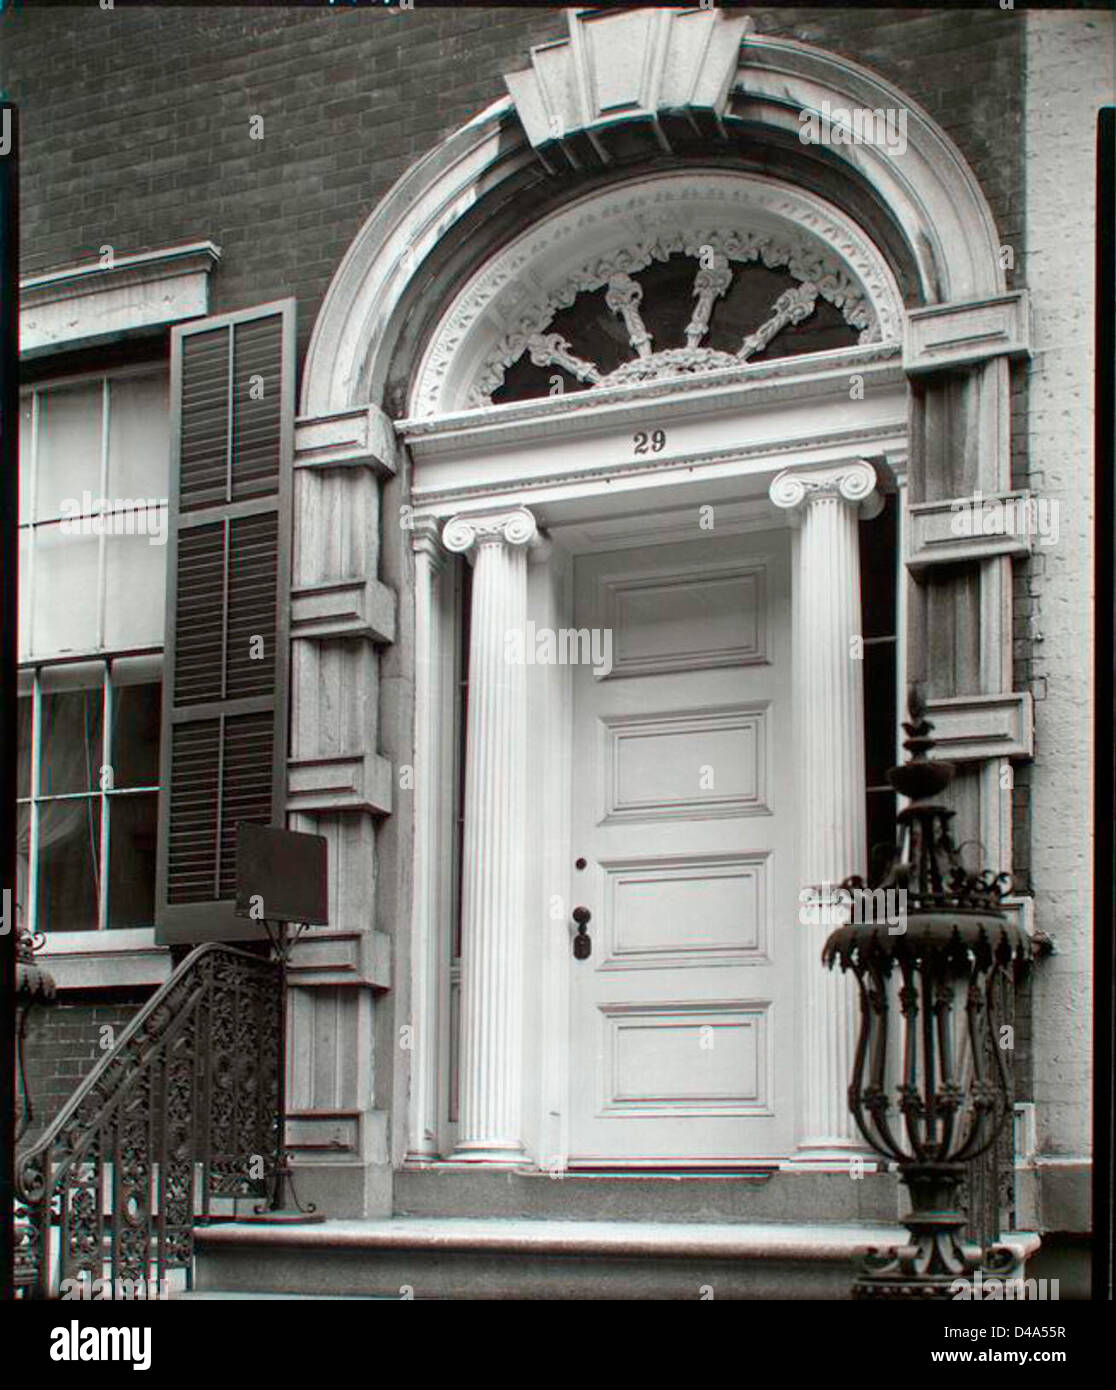 Doorway: Tredwell House, 29 East 4th Street, Manhattan. - Stock Image